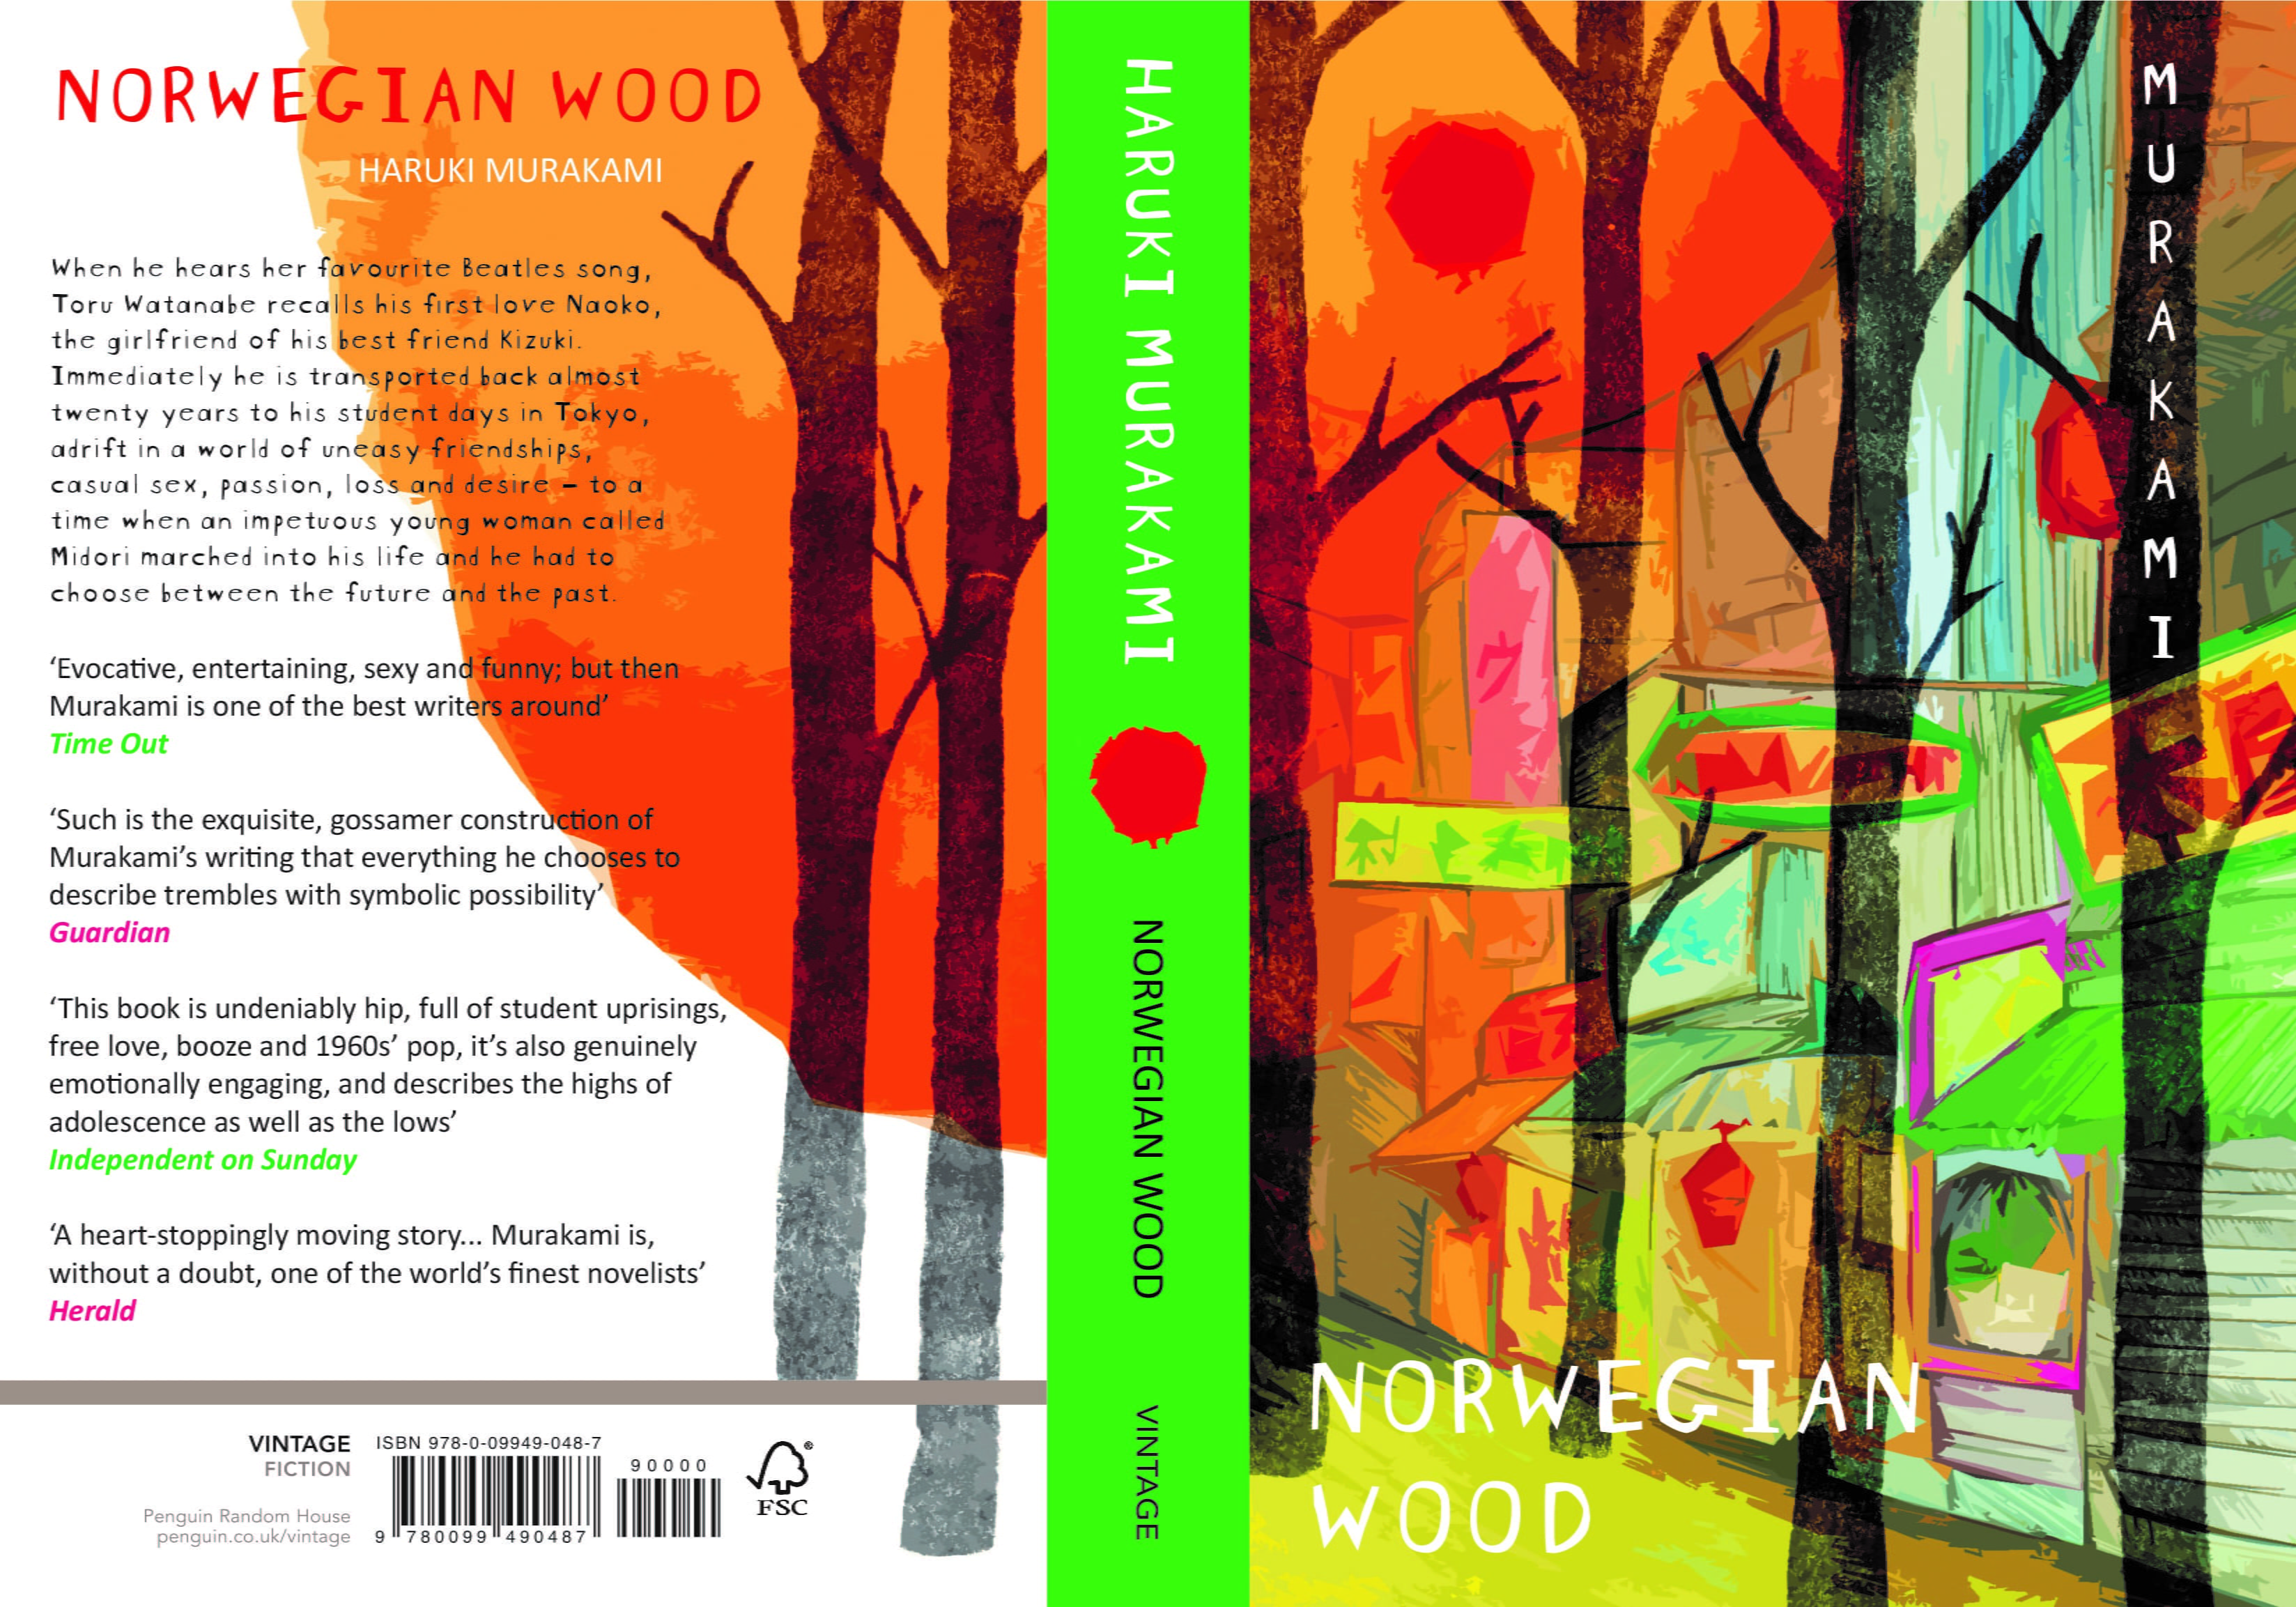 Illustrated Book Cover with a green spine. Abstract autumnal trees against a row of shops.